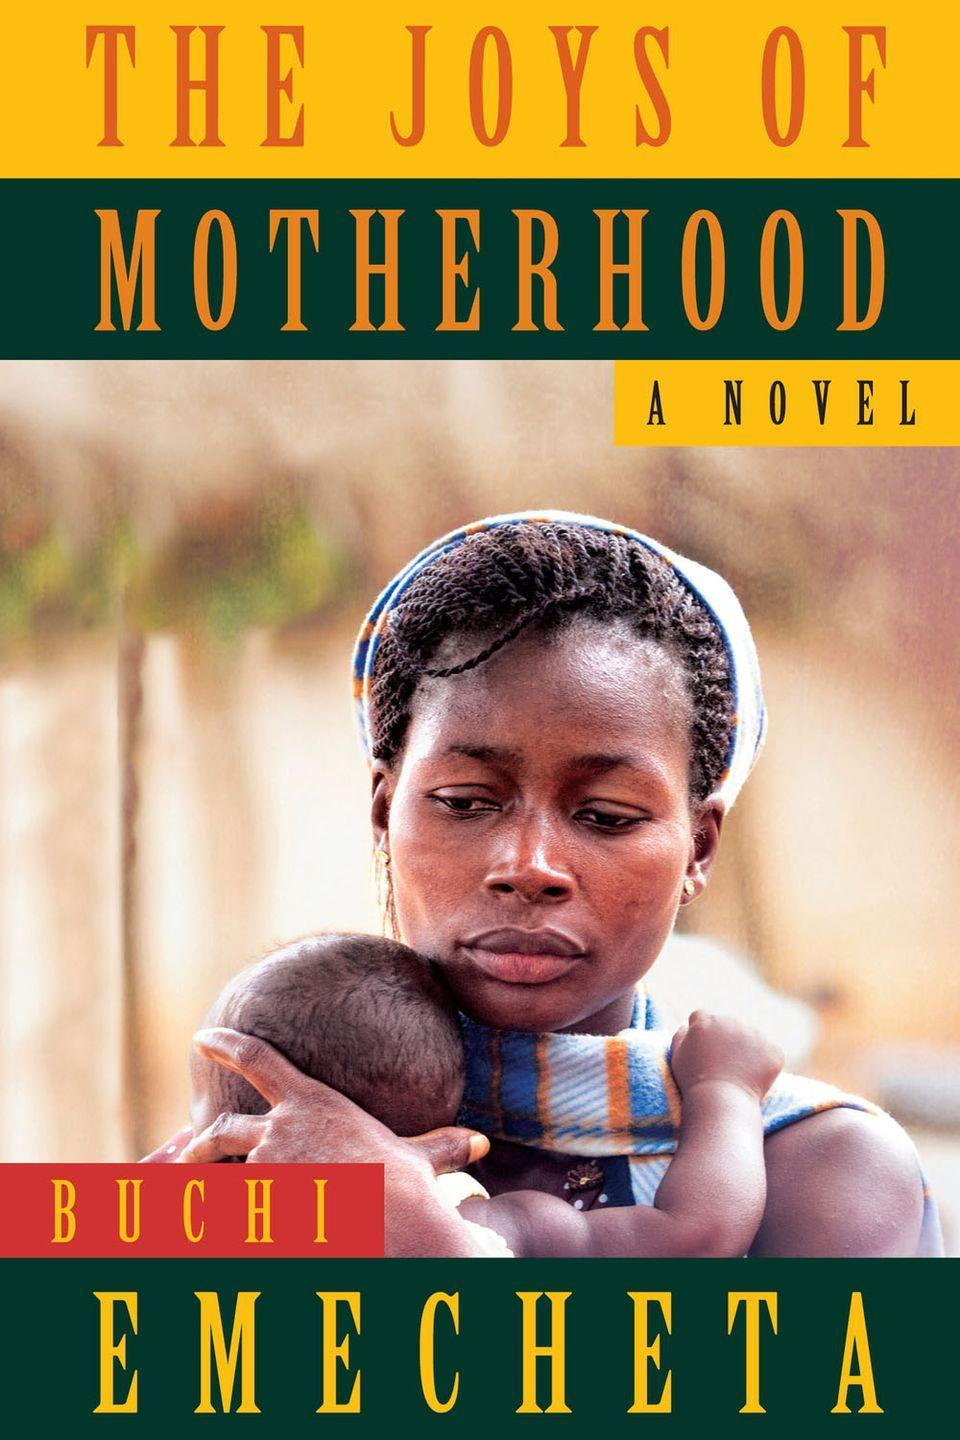 """<p><strong>Genre:</strong> Children, drama, non-fiction, and short stories </p><p><strong>Most famous works</strong>: The Joys of Motherhood and The Slave Girl</p><p>After moving to England in the 60s', Emecheta used both her experiences of living in Britain to write about women in African and immigrant society. She explored themes of equality, modernity, and tradition. Now with over 20 books under her belt, Emecheta has made huge contributions to British literature, and has been described as """"the first successful black woman novelist living in Britain after 1948"""".<br></p>"""